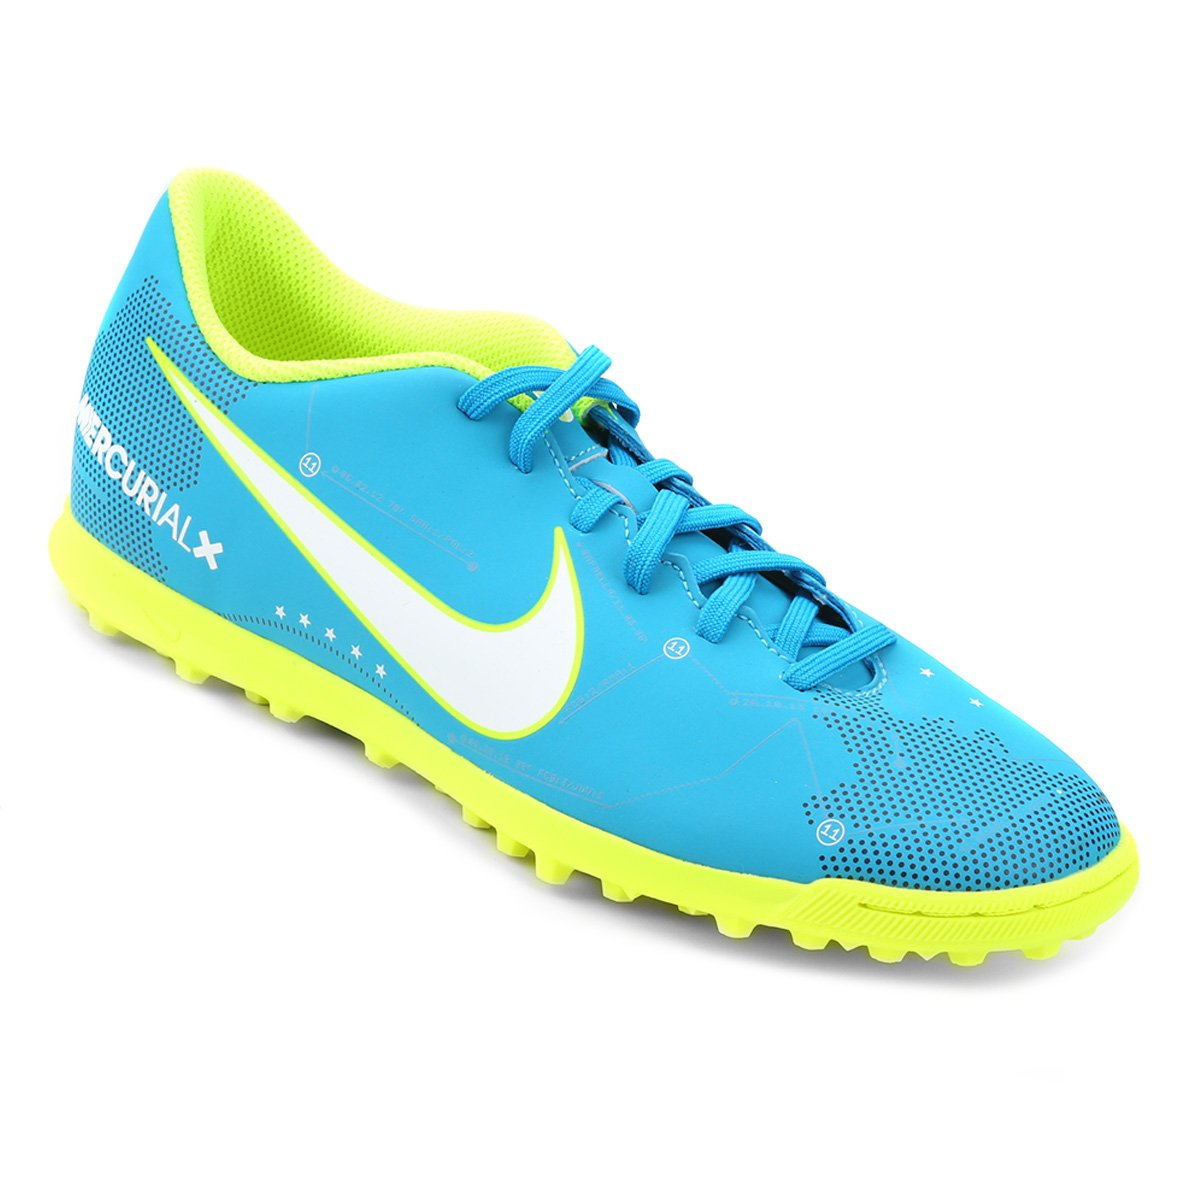 0e8f024d50 ... switzerland chuteira society nike mercurial vortex 3 neymar jr tf  masculina azulbranco 4a1b8 88be3